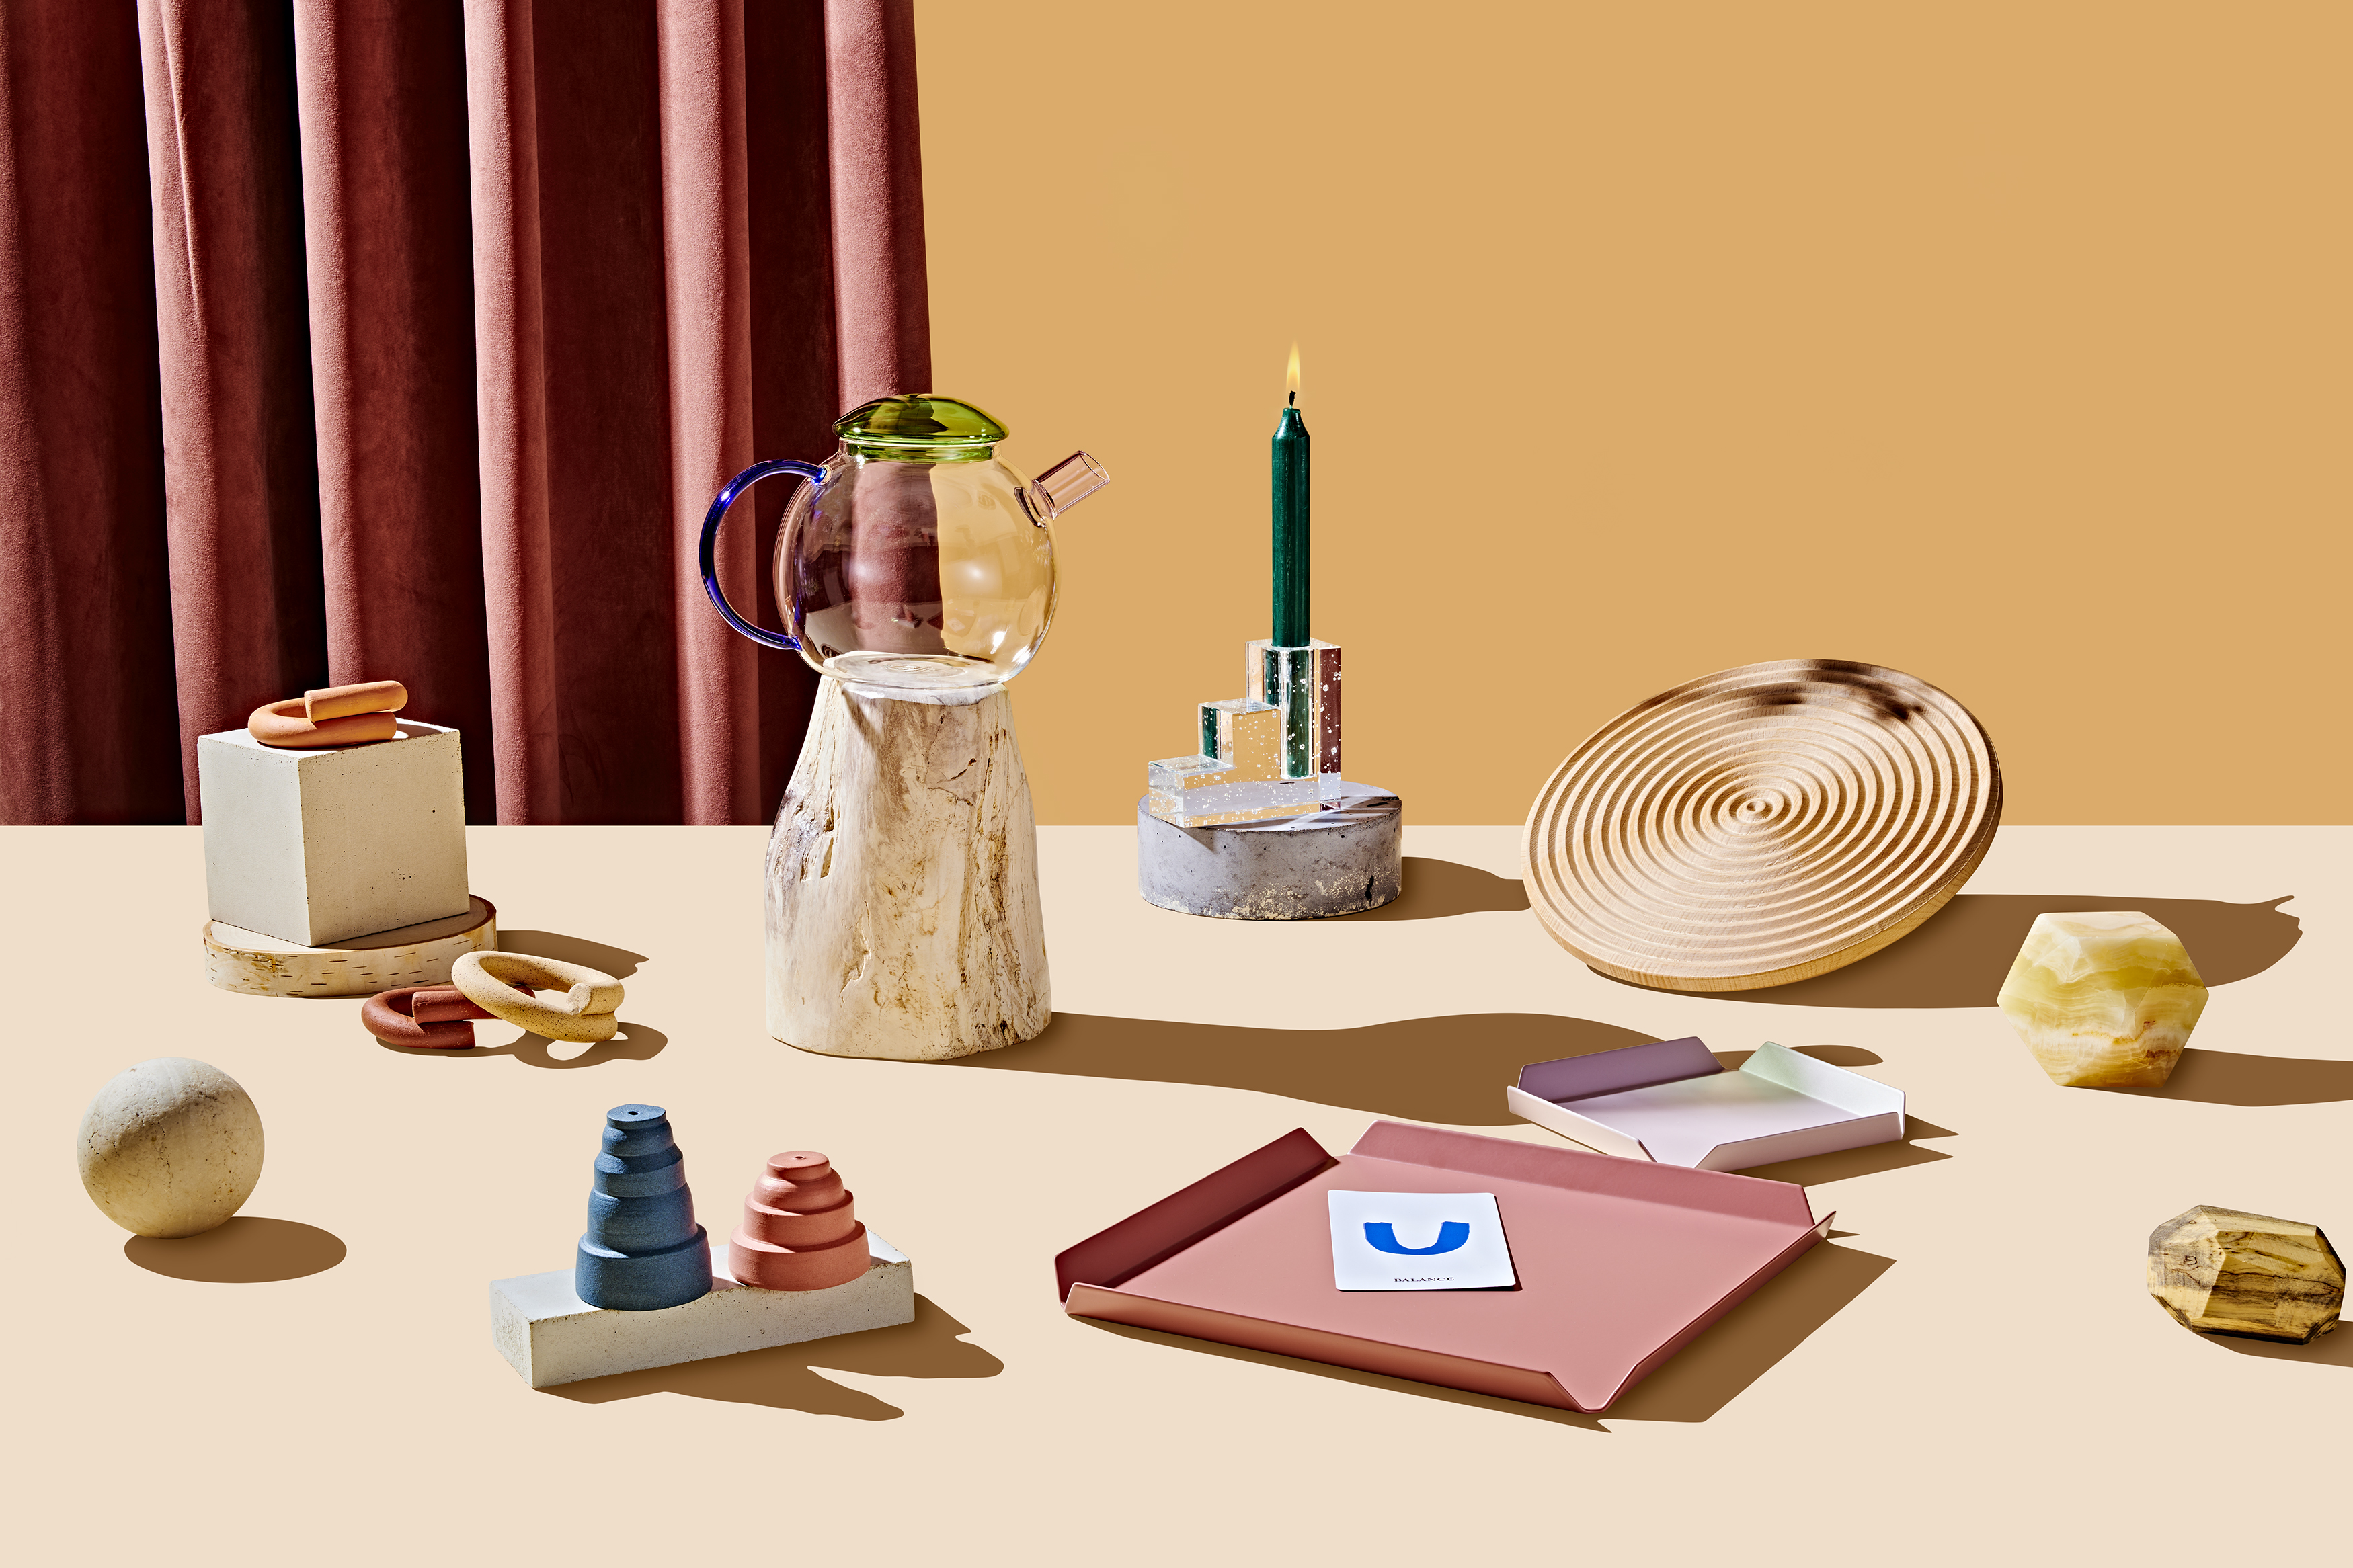 A grouping of objects arranged on a table for the Curbed Holiday Gift Guide 2019. There is a teapot, candleholder, cutting board, tarot card, salt and pepper shakers, napkin rings, and other objects. In the background is a mauve curtain and a yellow wall.